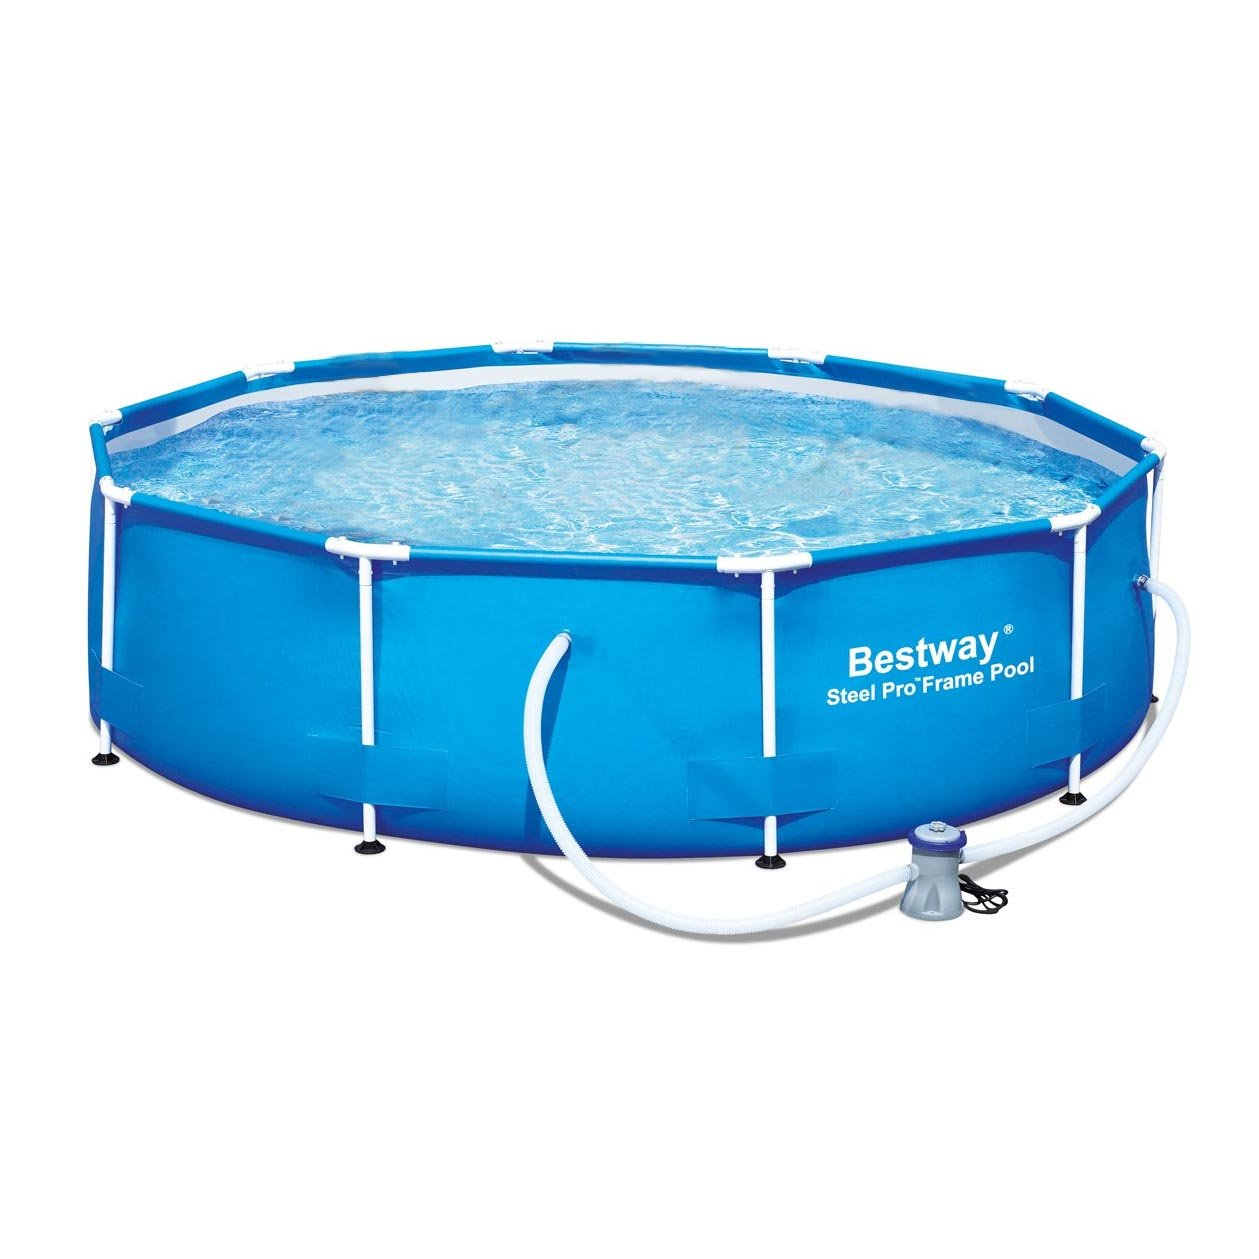 Bestway 12' x 36'' Steel Pro Frame Above Ground Family Swimming Pool Set w/Pump